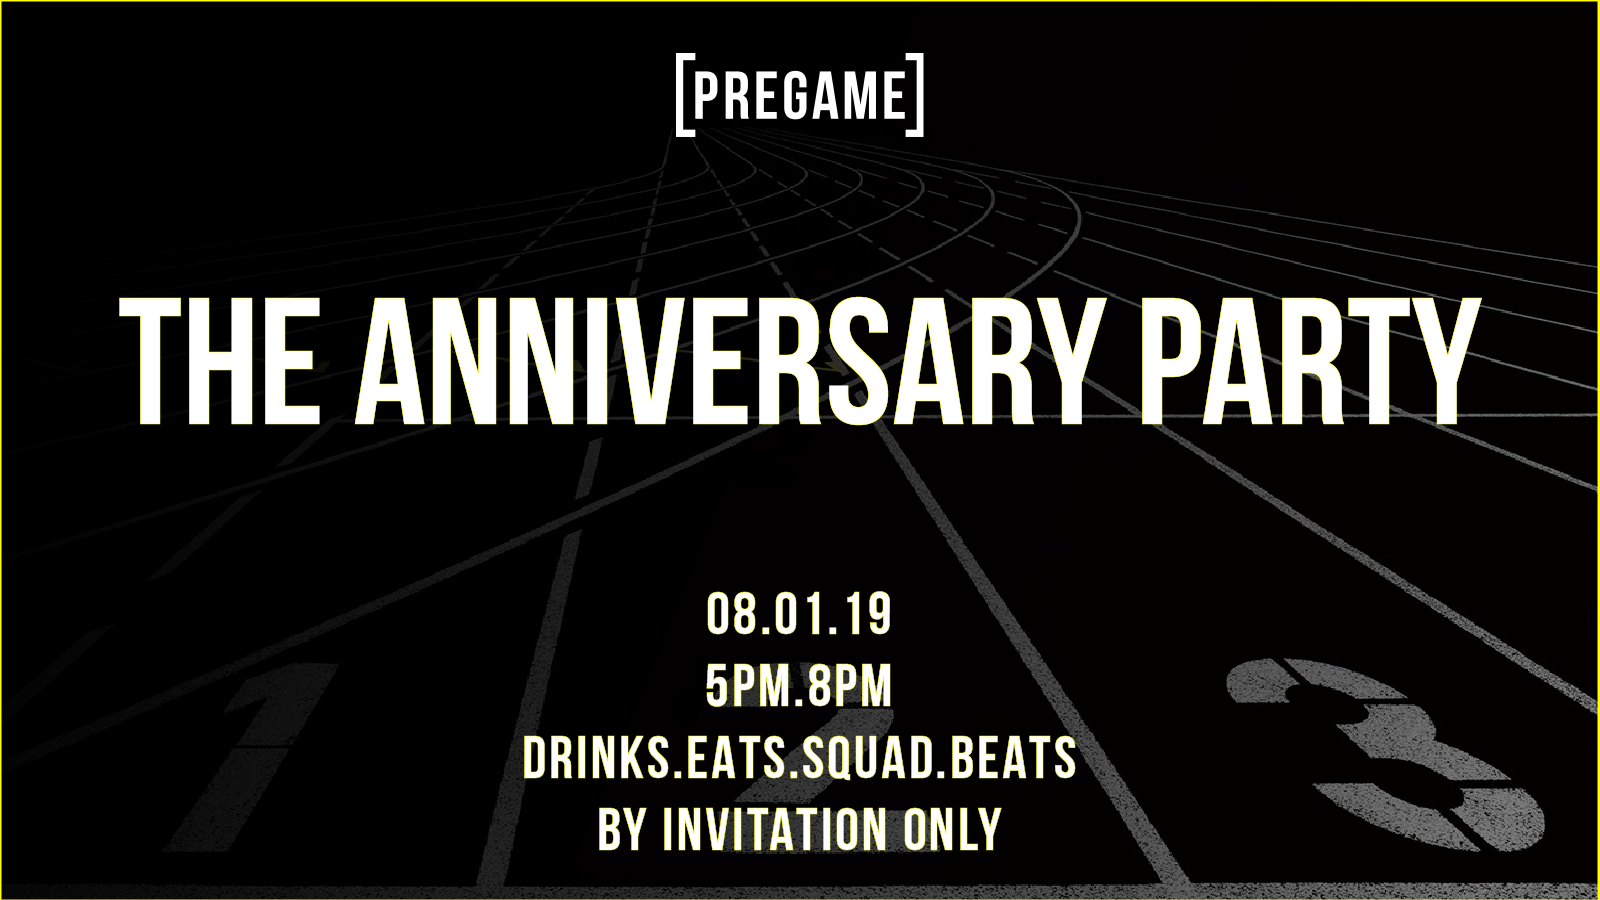 Pregame-Anniversary-Party-2019.png